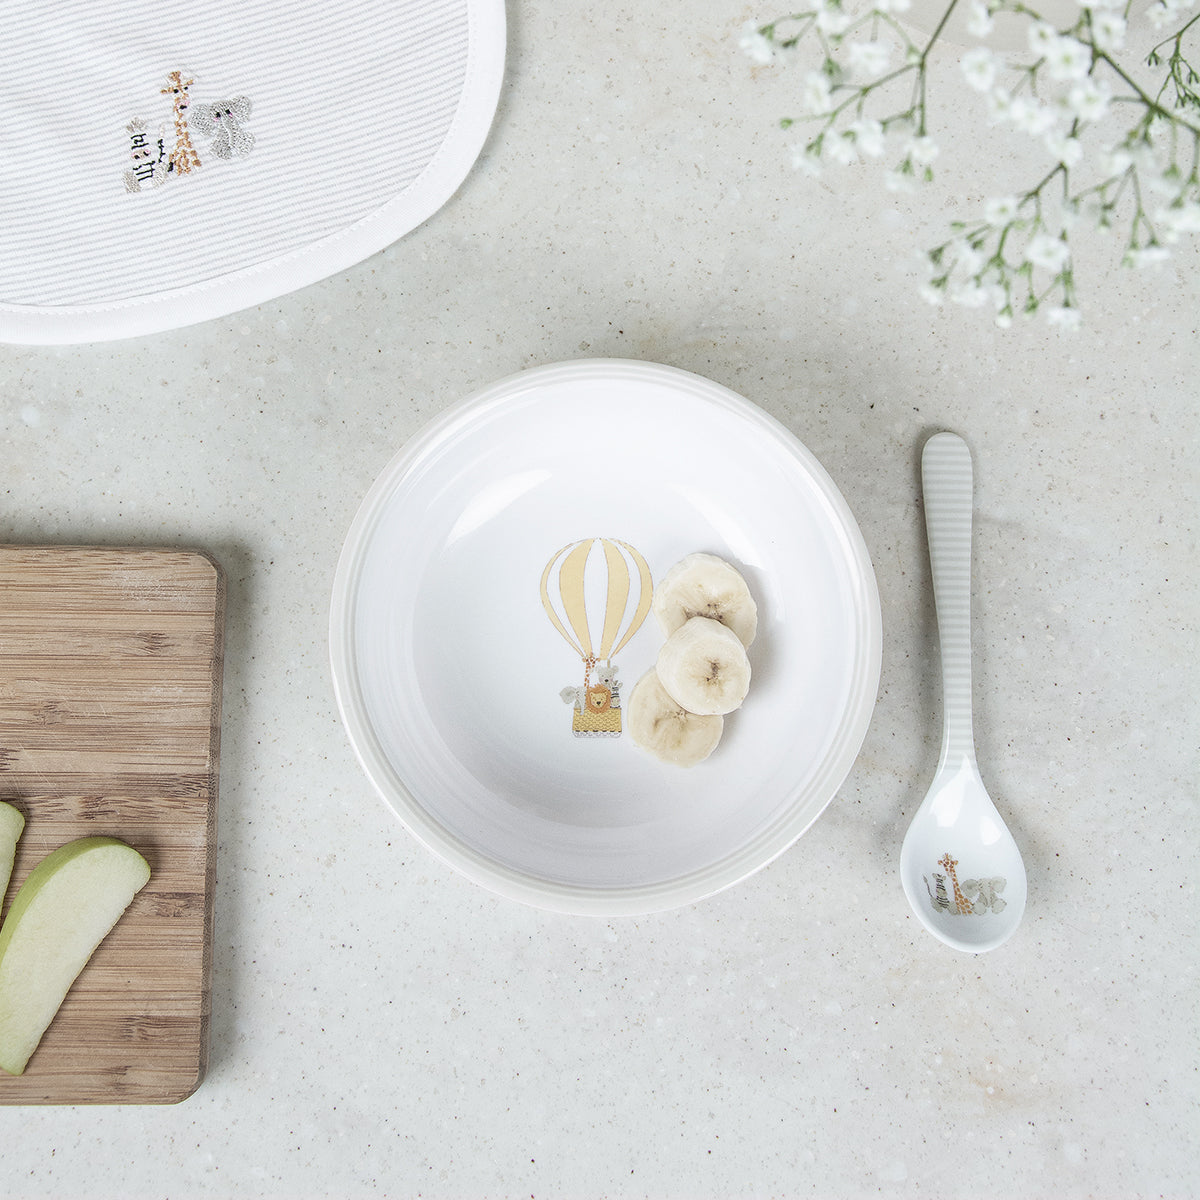 Baby Spoon by Sophie Allport